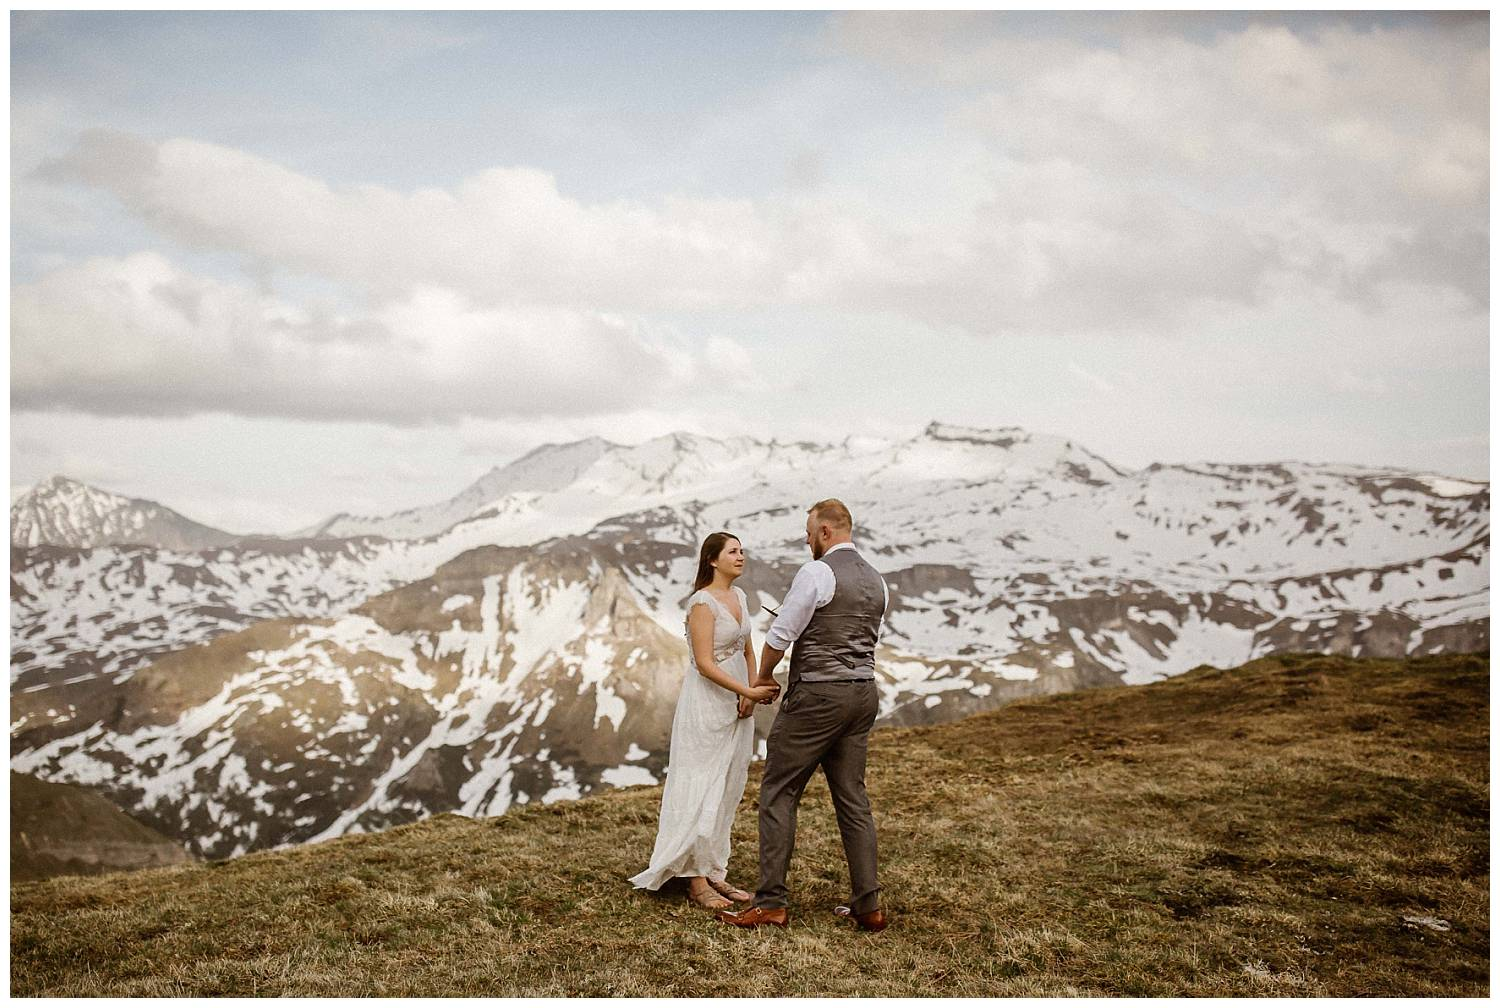 reading-vows-in-the-mountains